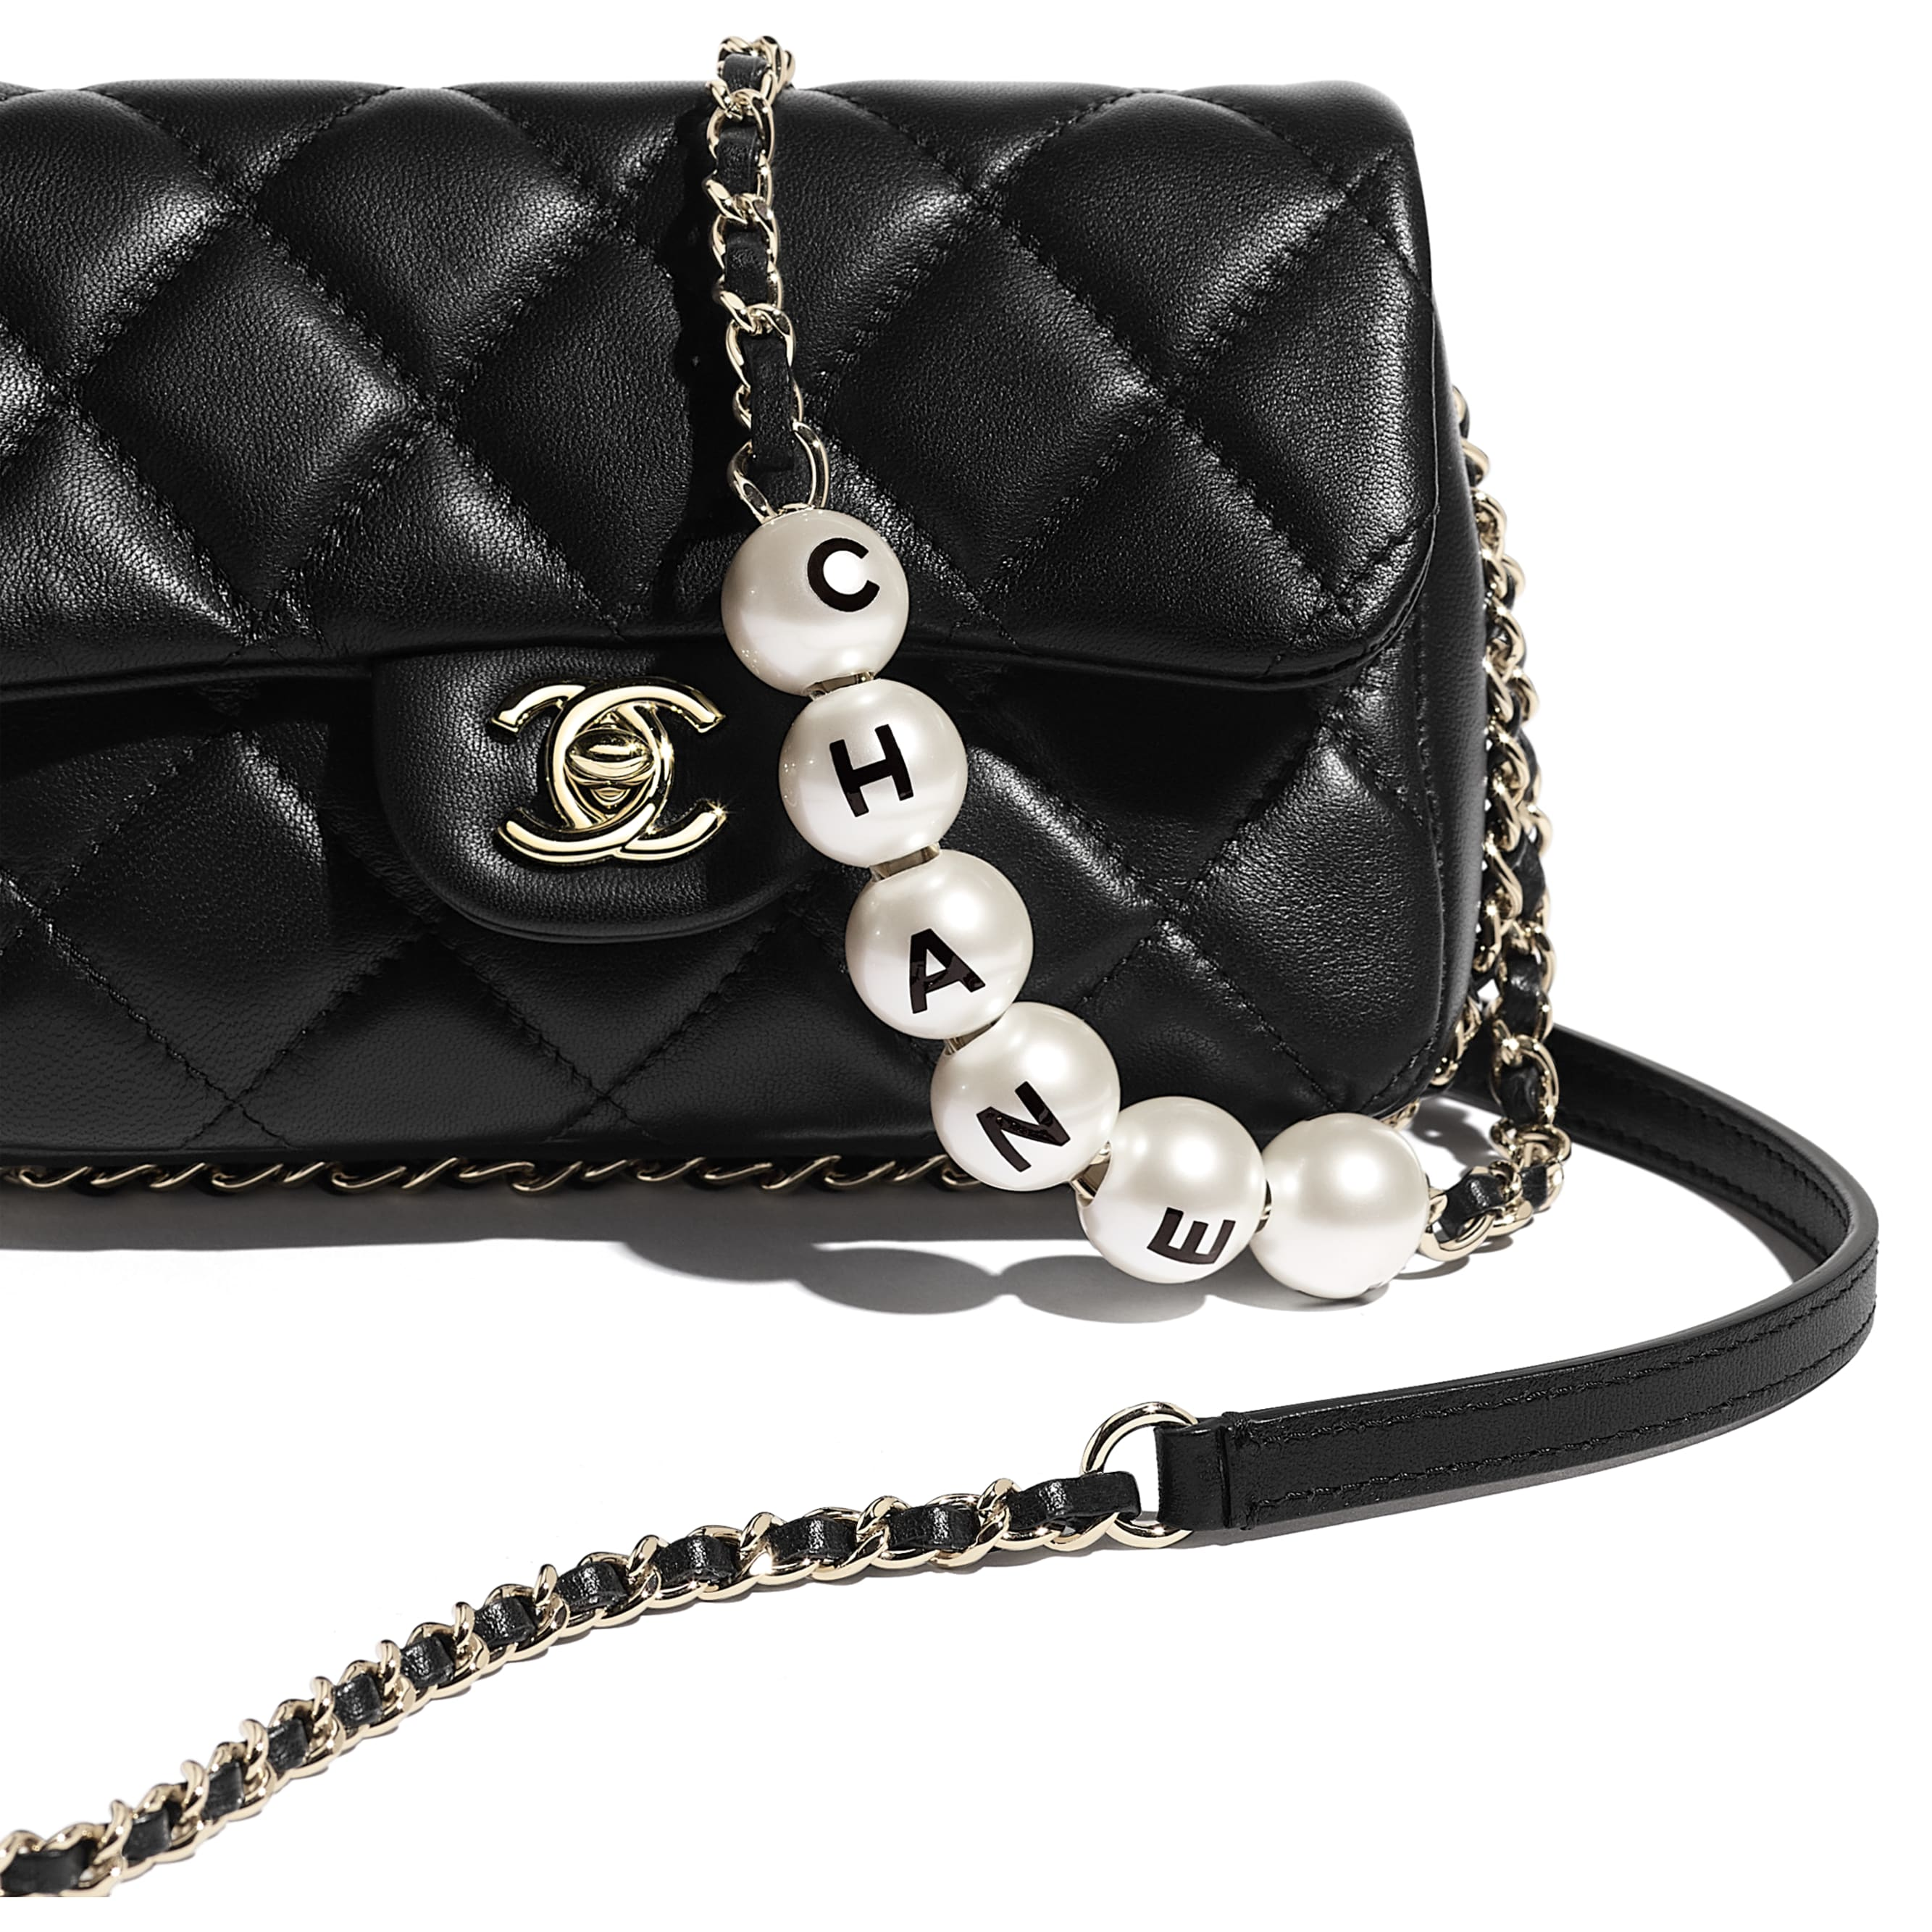 Small Flap Bag - Black - Lambskin, Imitation Pearls & Gold Metal - Extra view - see standard sized version